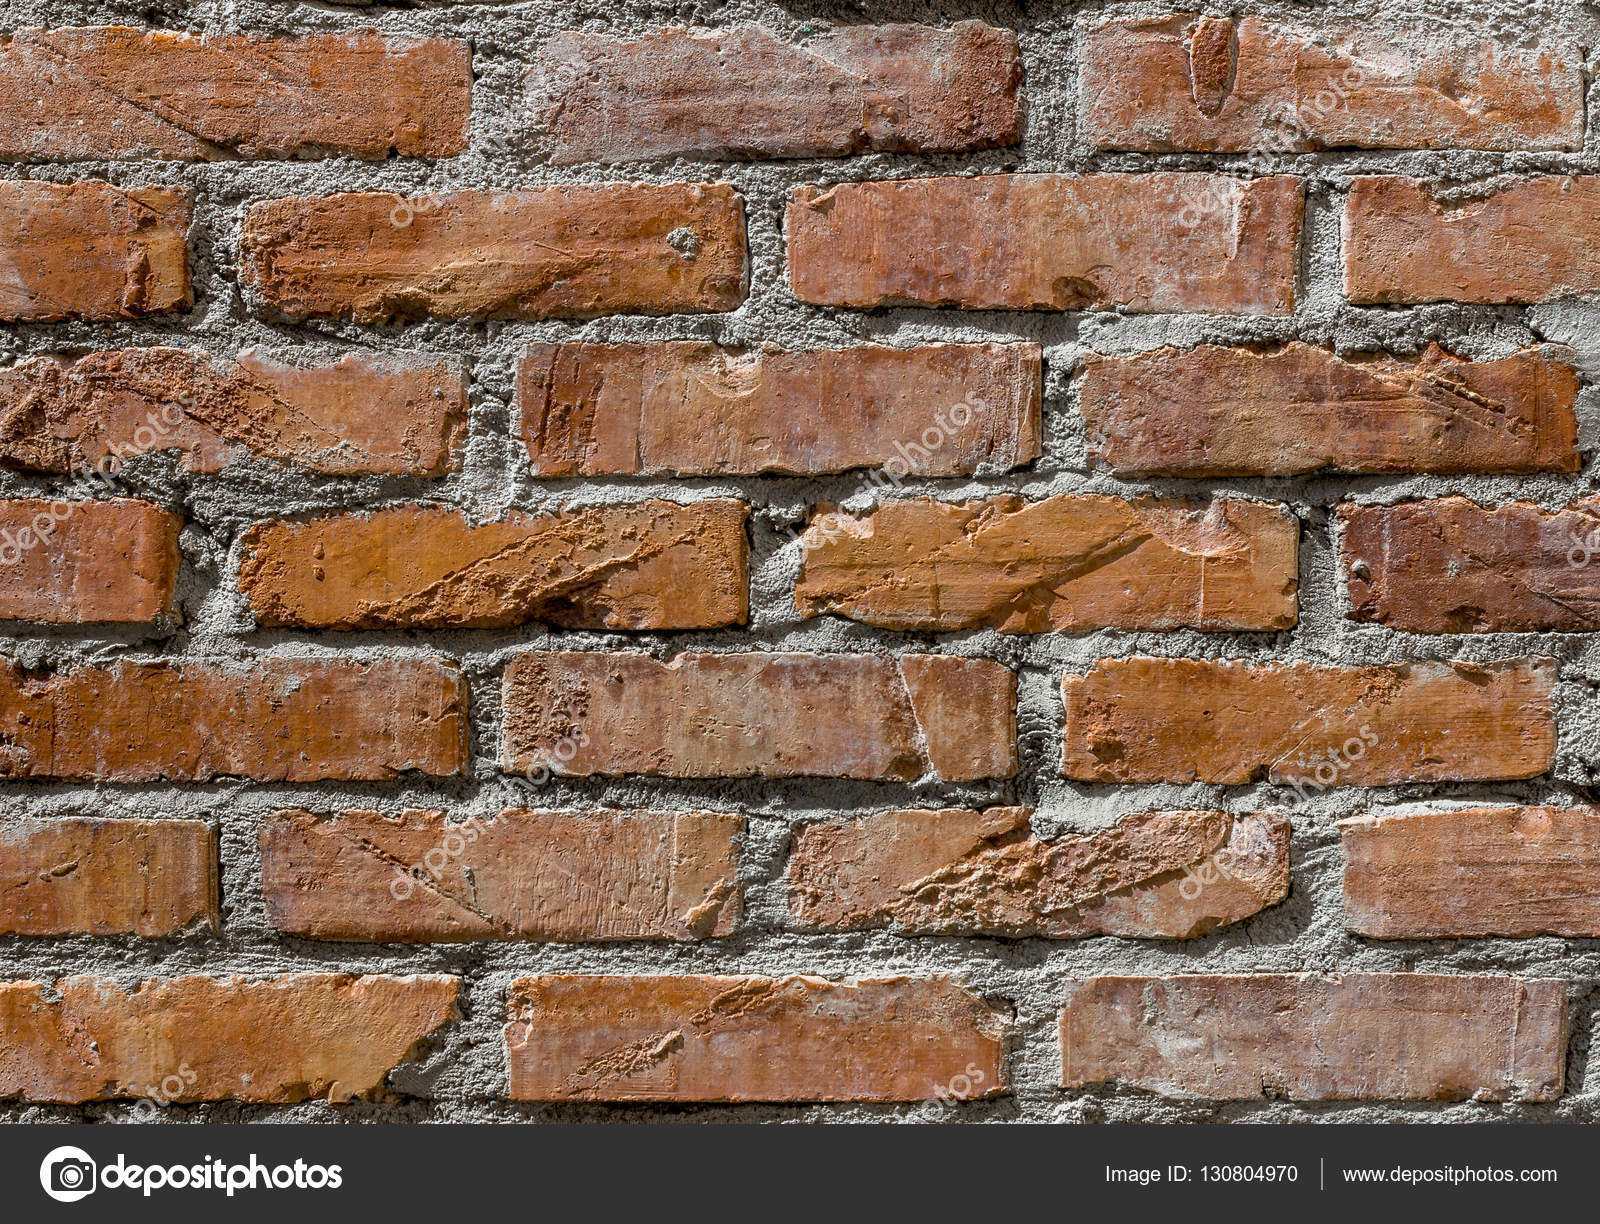 Details Of An Old Weathered Brick Wall Image Would Work As A Background Or Wallpaper Photo By Germanopoli